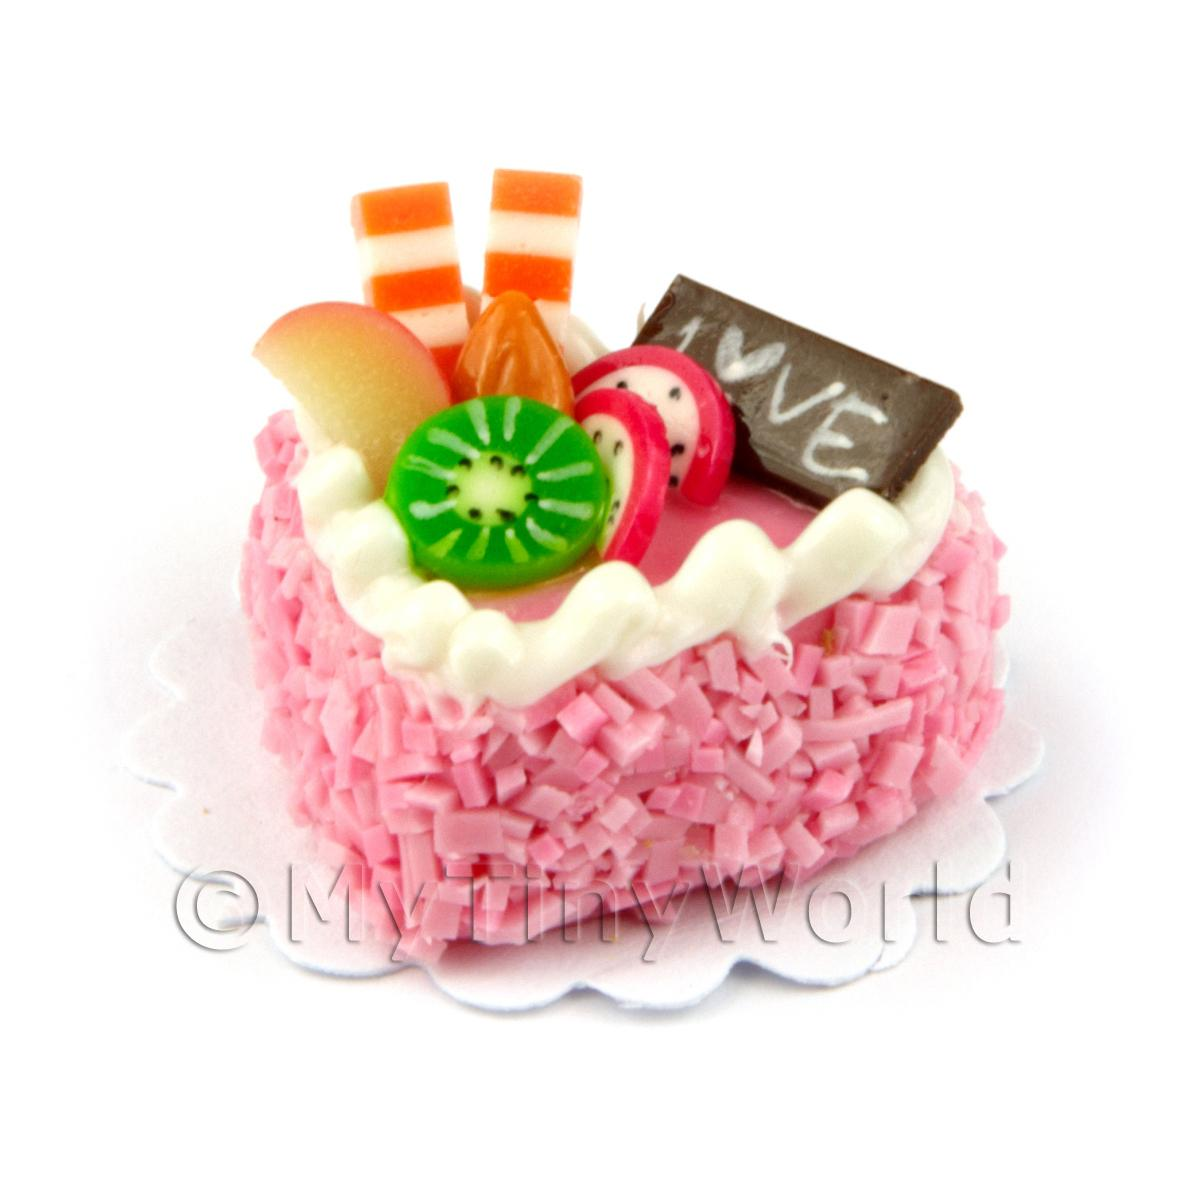 Dolls House Miniature 22mm Pink Iced Heart Cake